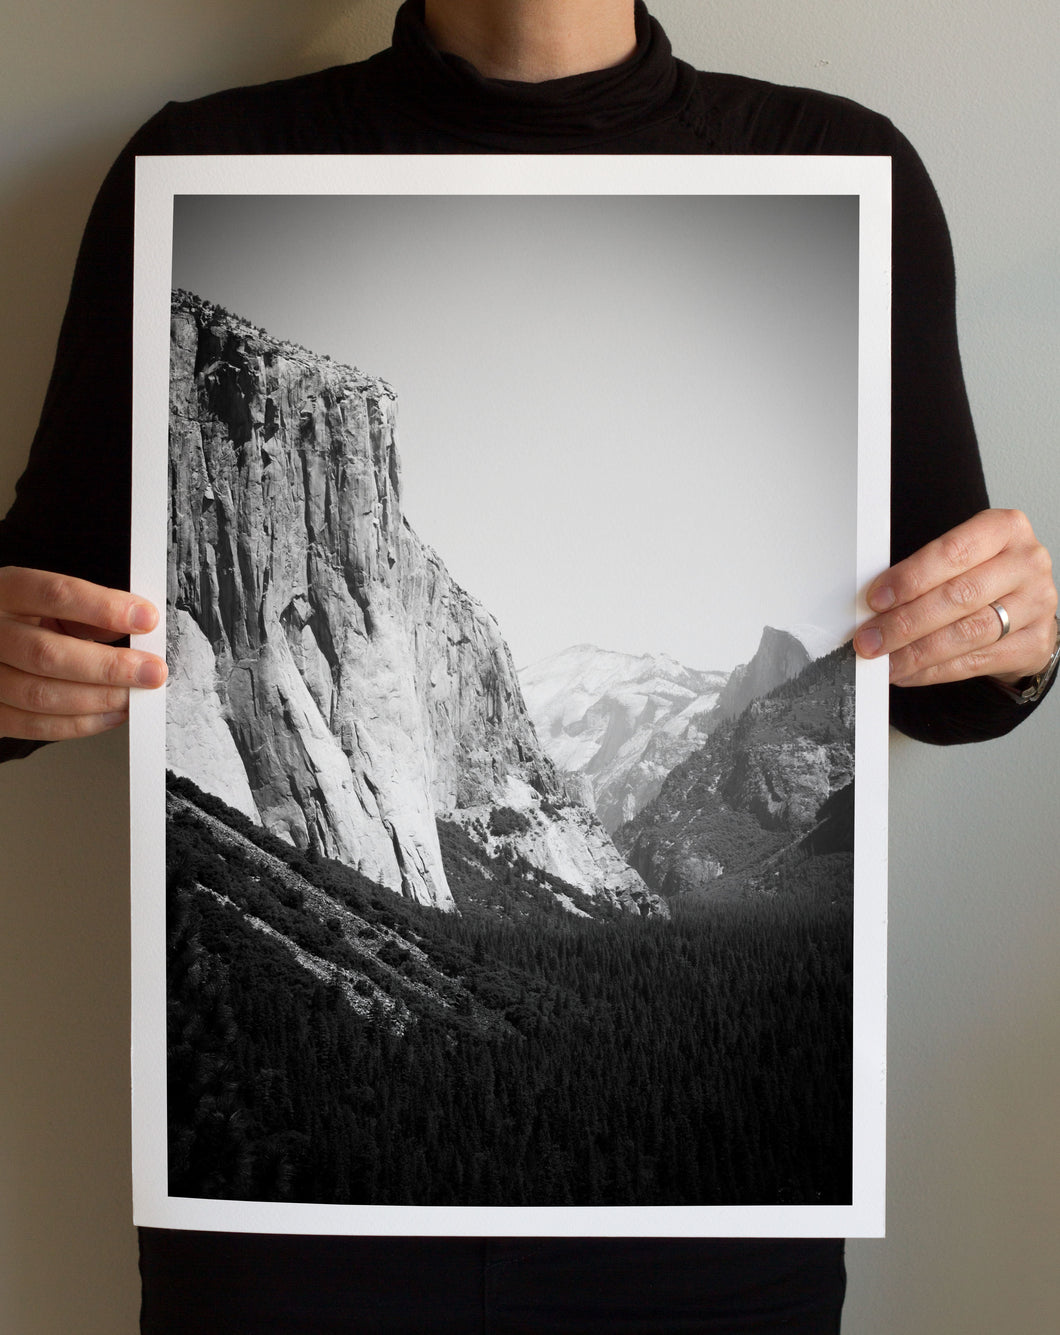 Matte Print | Black and White: El Capitan Yosemite 8384 - Lemonee on the Hills